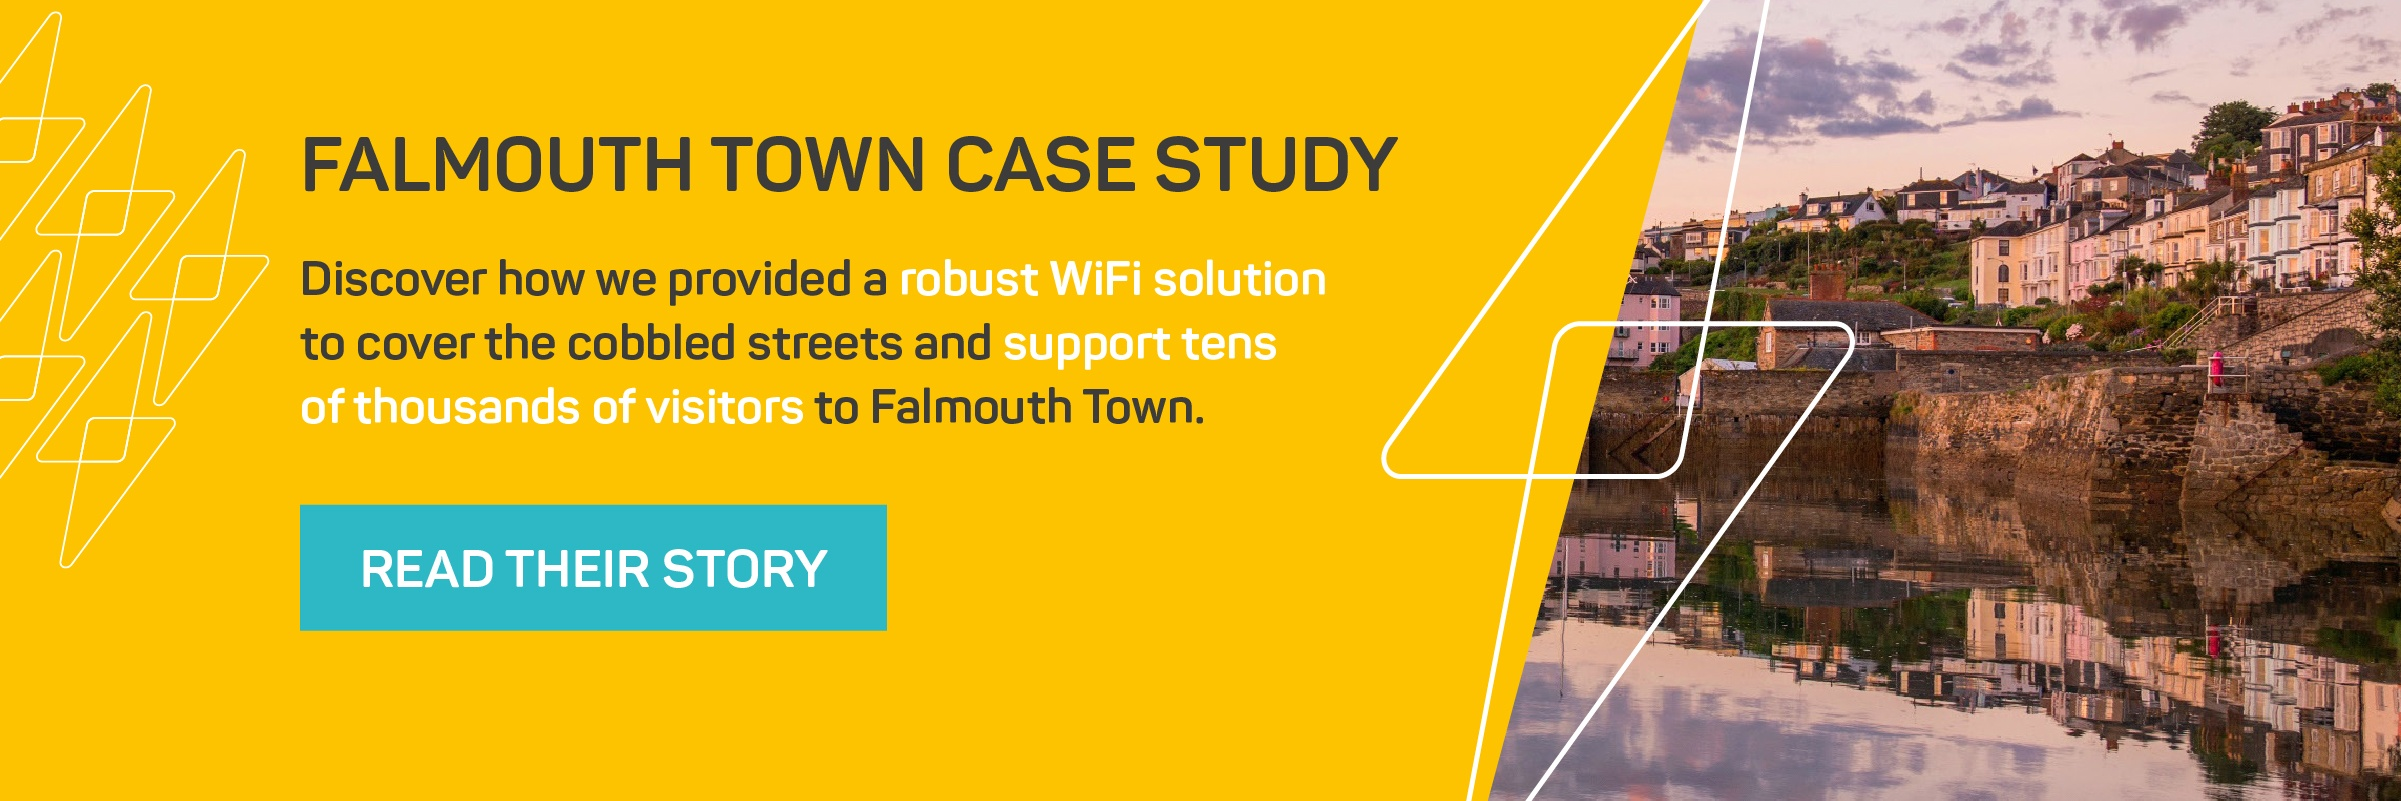 Falmouth Town Case Study